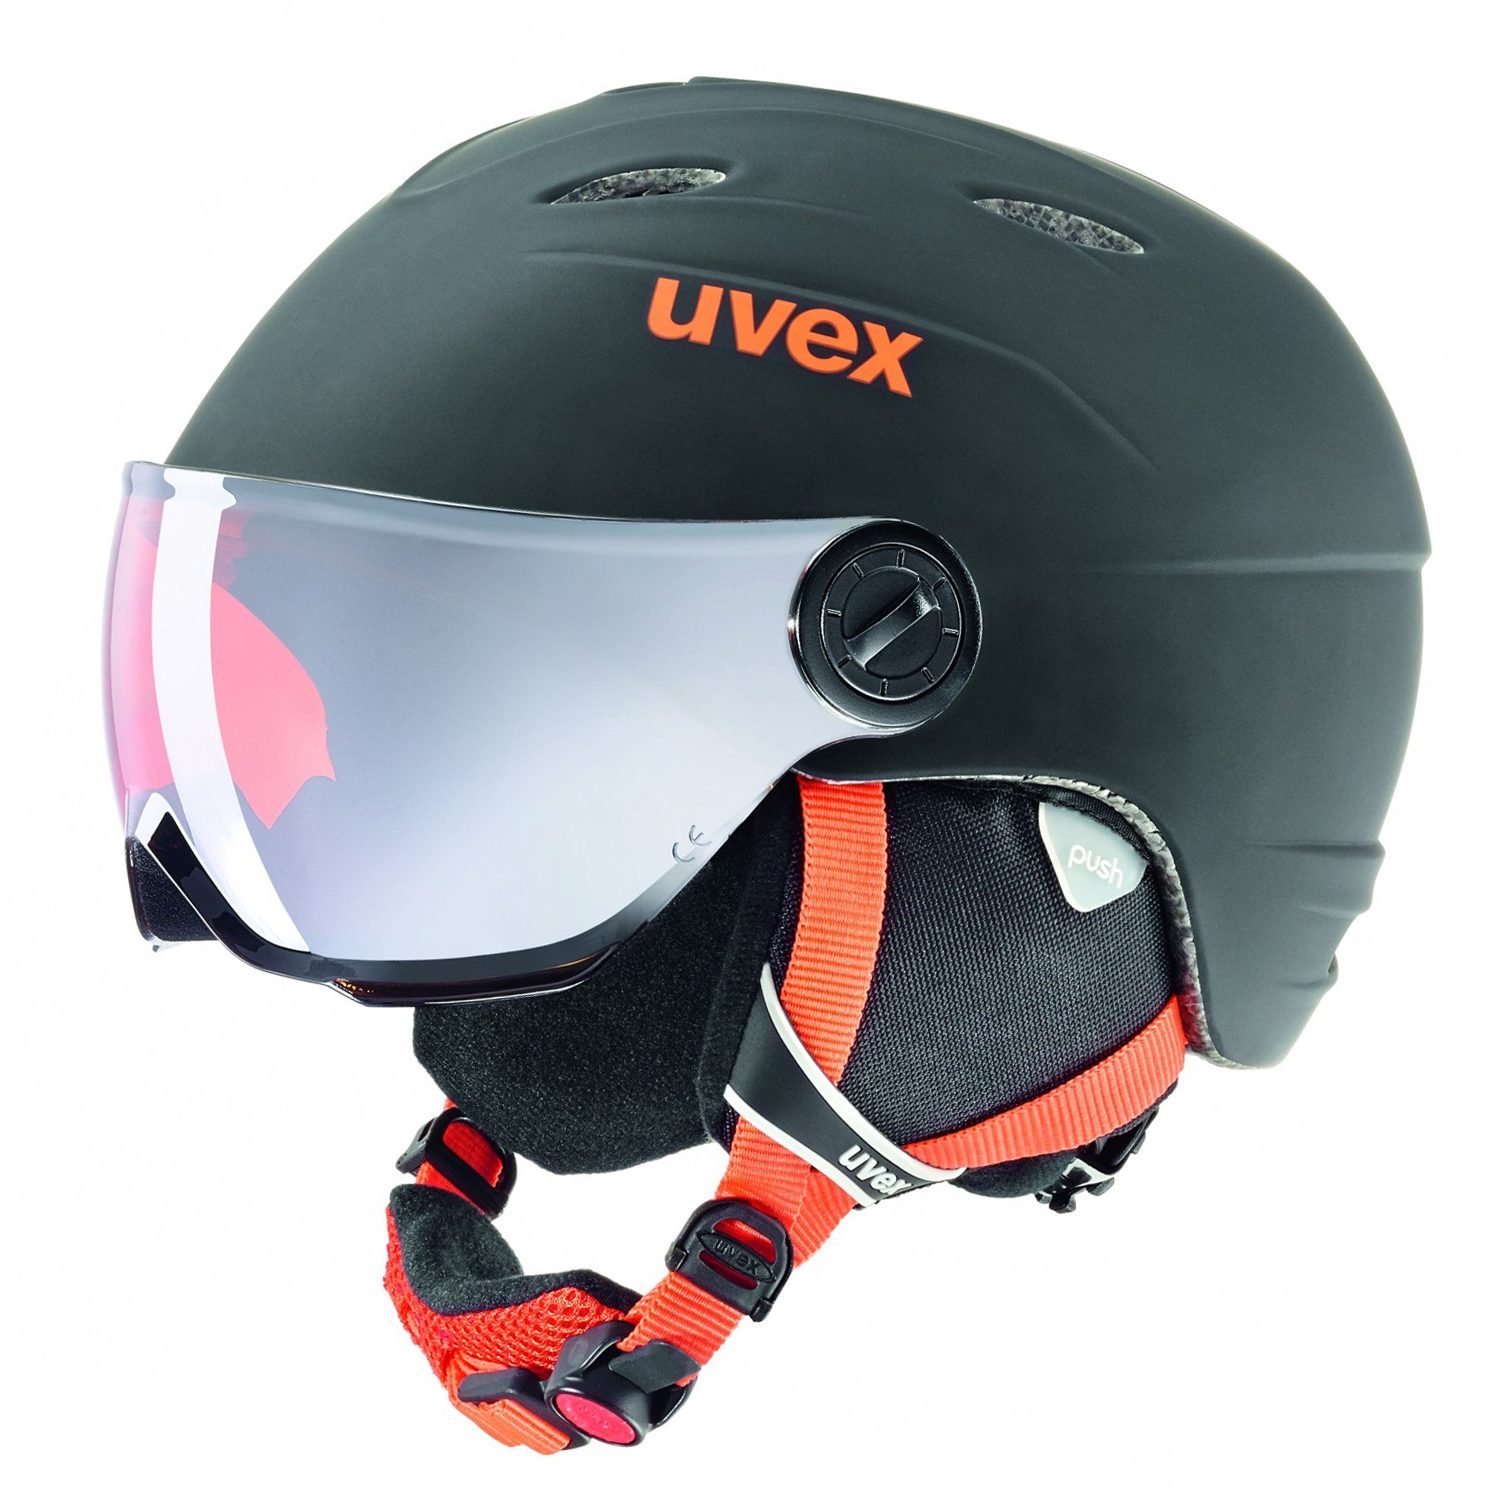 Uvex Junior Visor Pro black orange kindervizierhelm